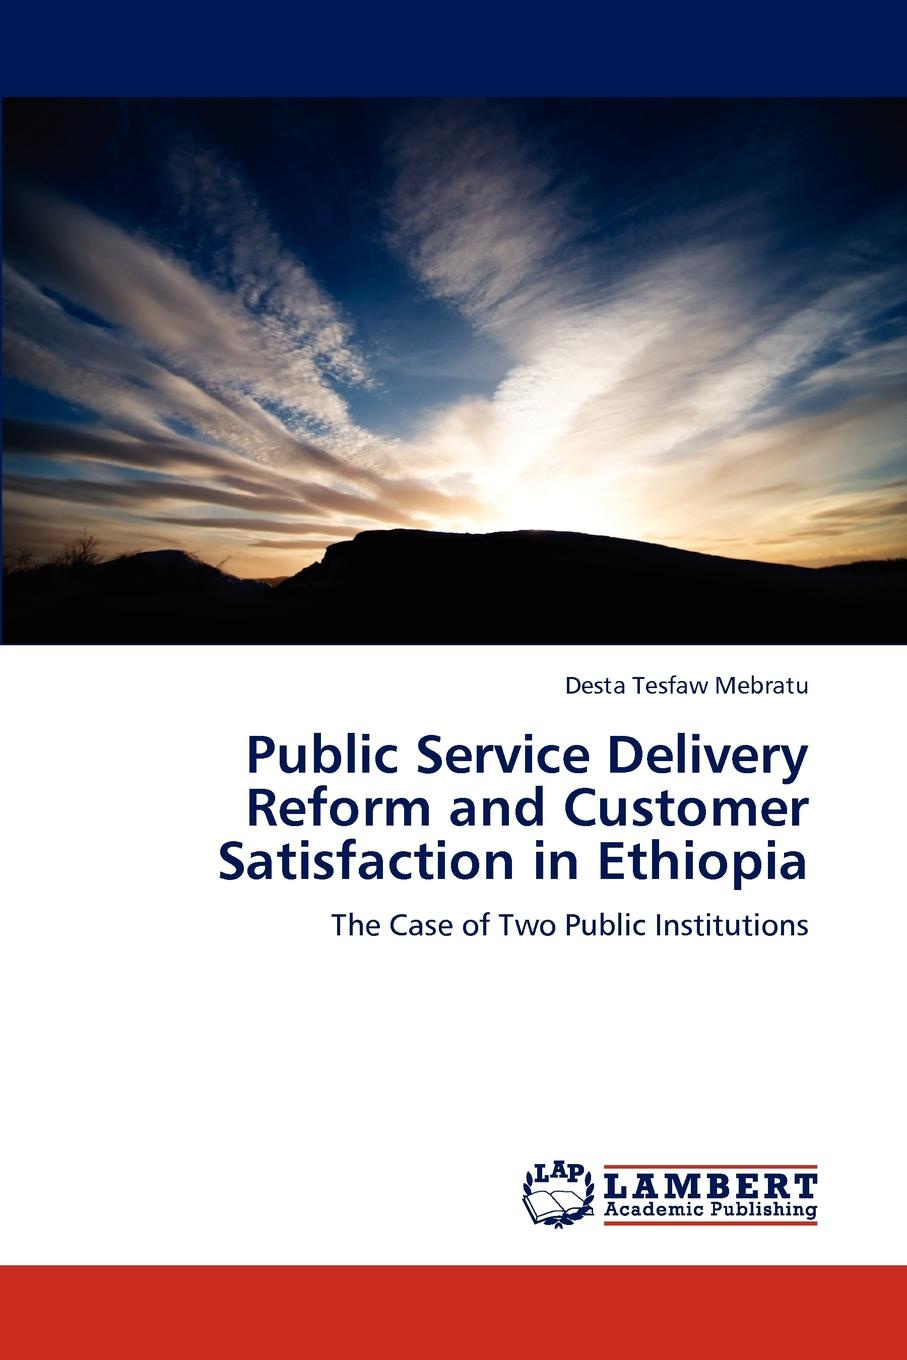 Desta Tesfaw Public Service Delivery Reform and Customer Satisfaction in Ethiopia cost effectiveness analysis of pmtct service delivery modalities